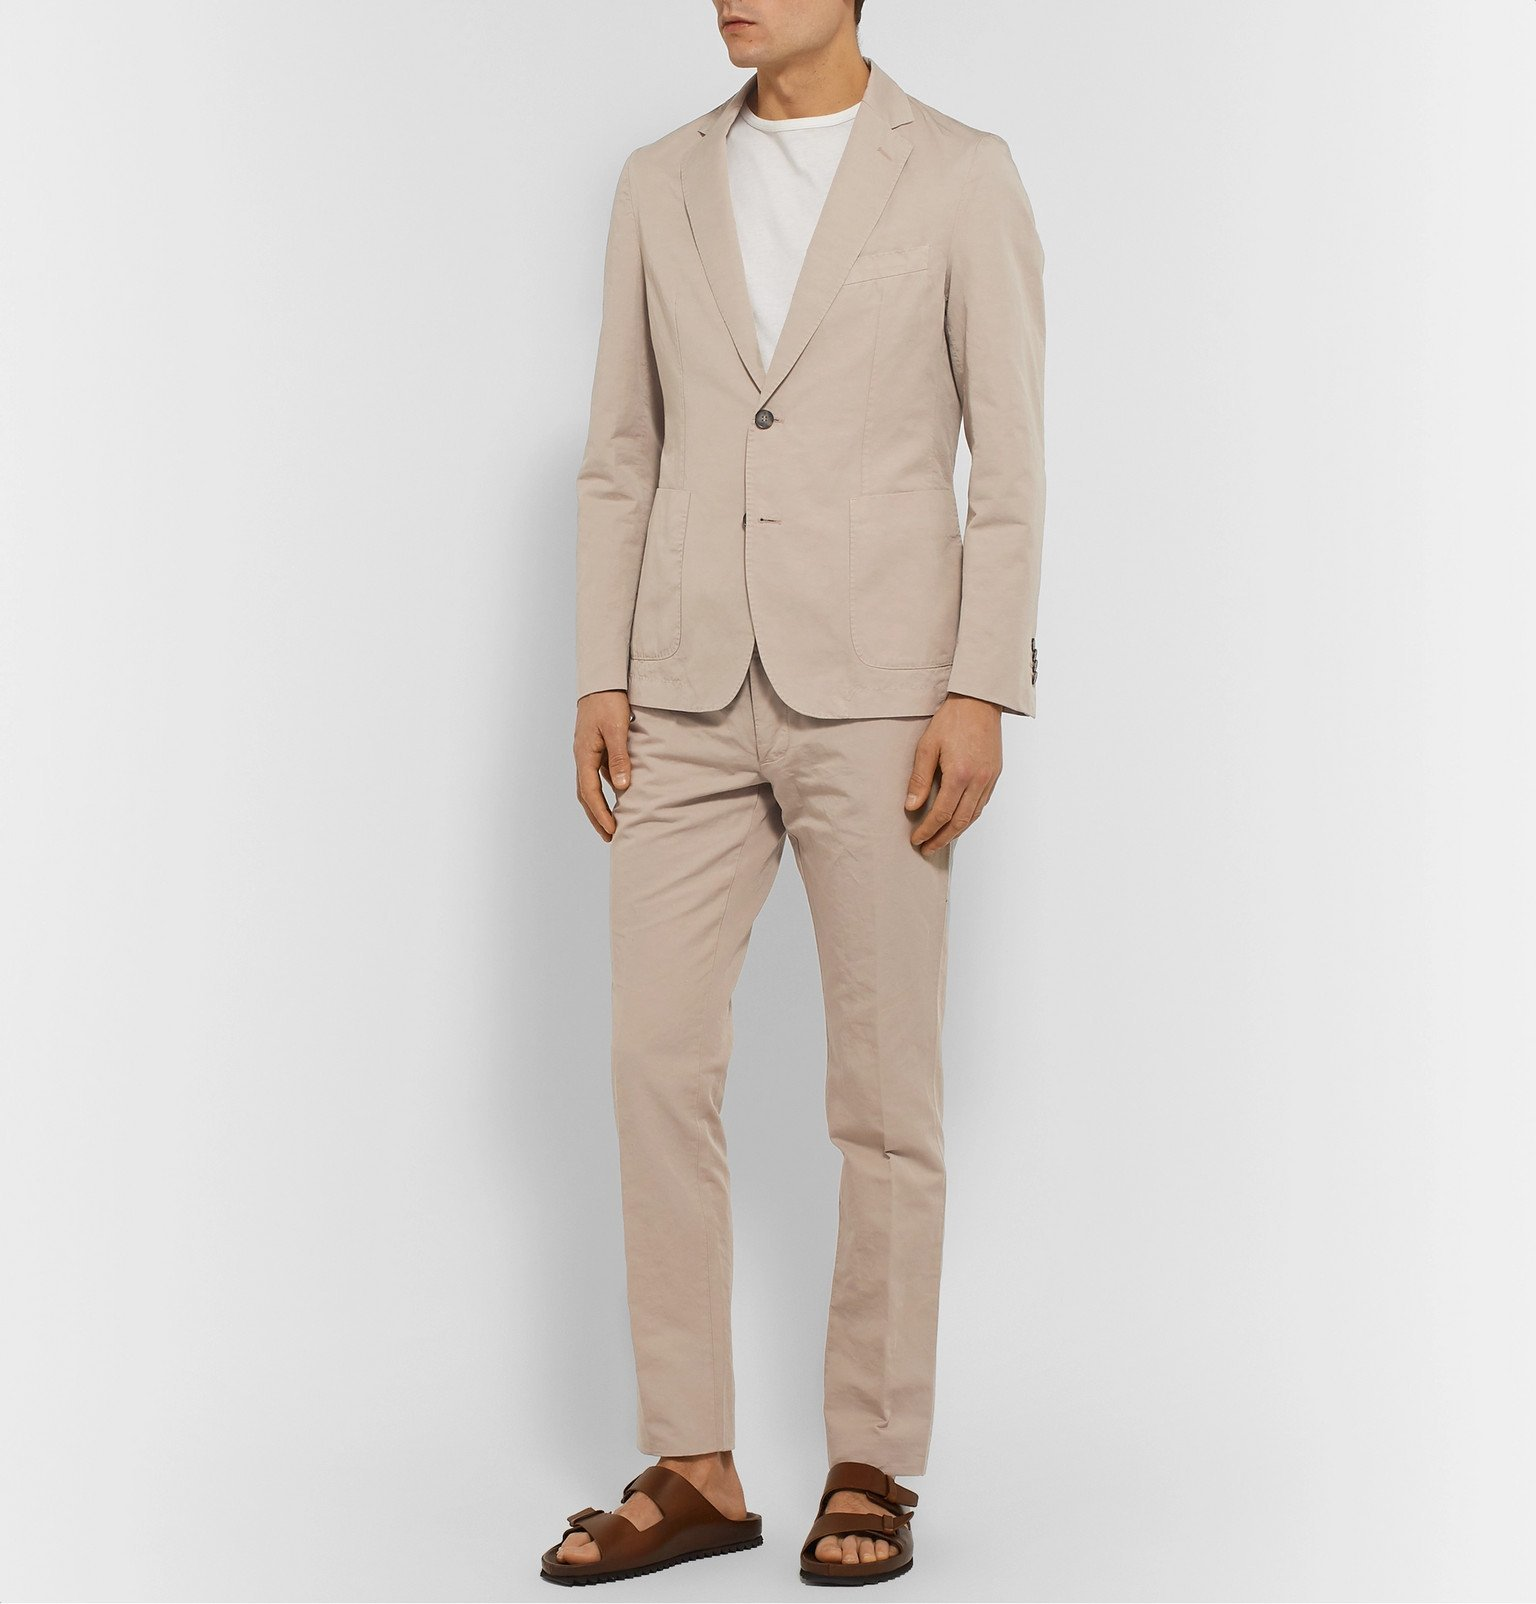 Officine Generale - Slim-Fit Garment-Dyed Cotton and Linen-Blend Suit Jacket - Neutrals